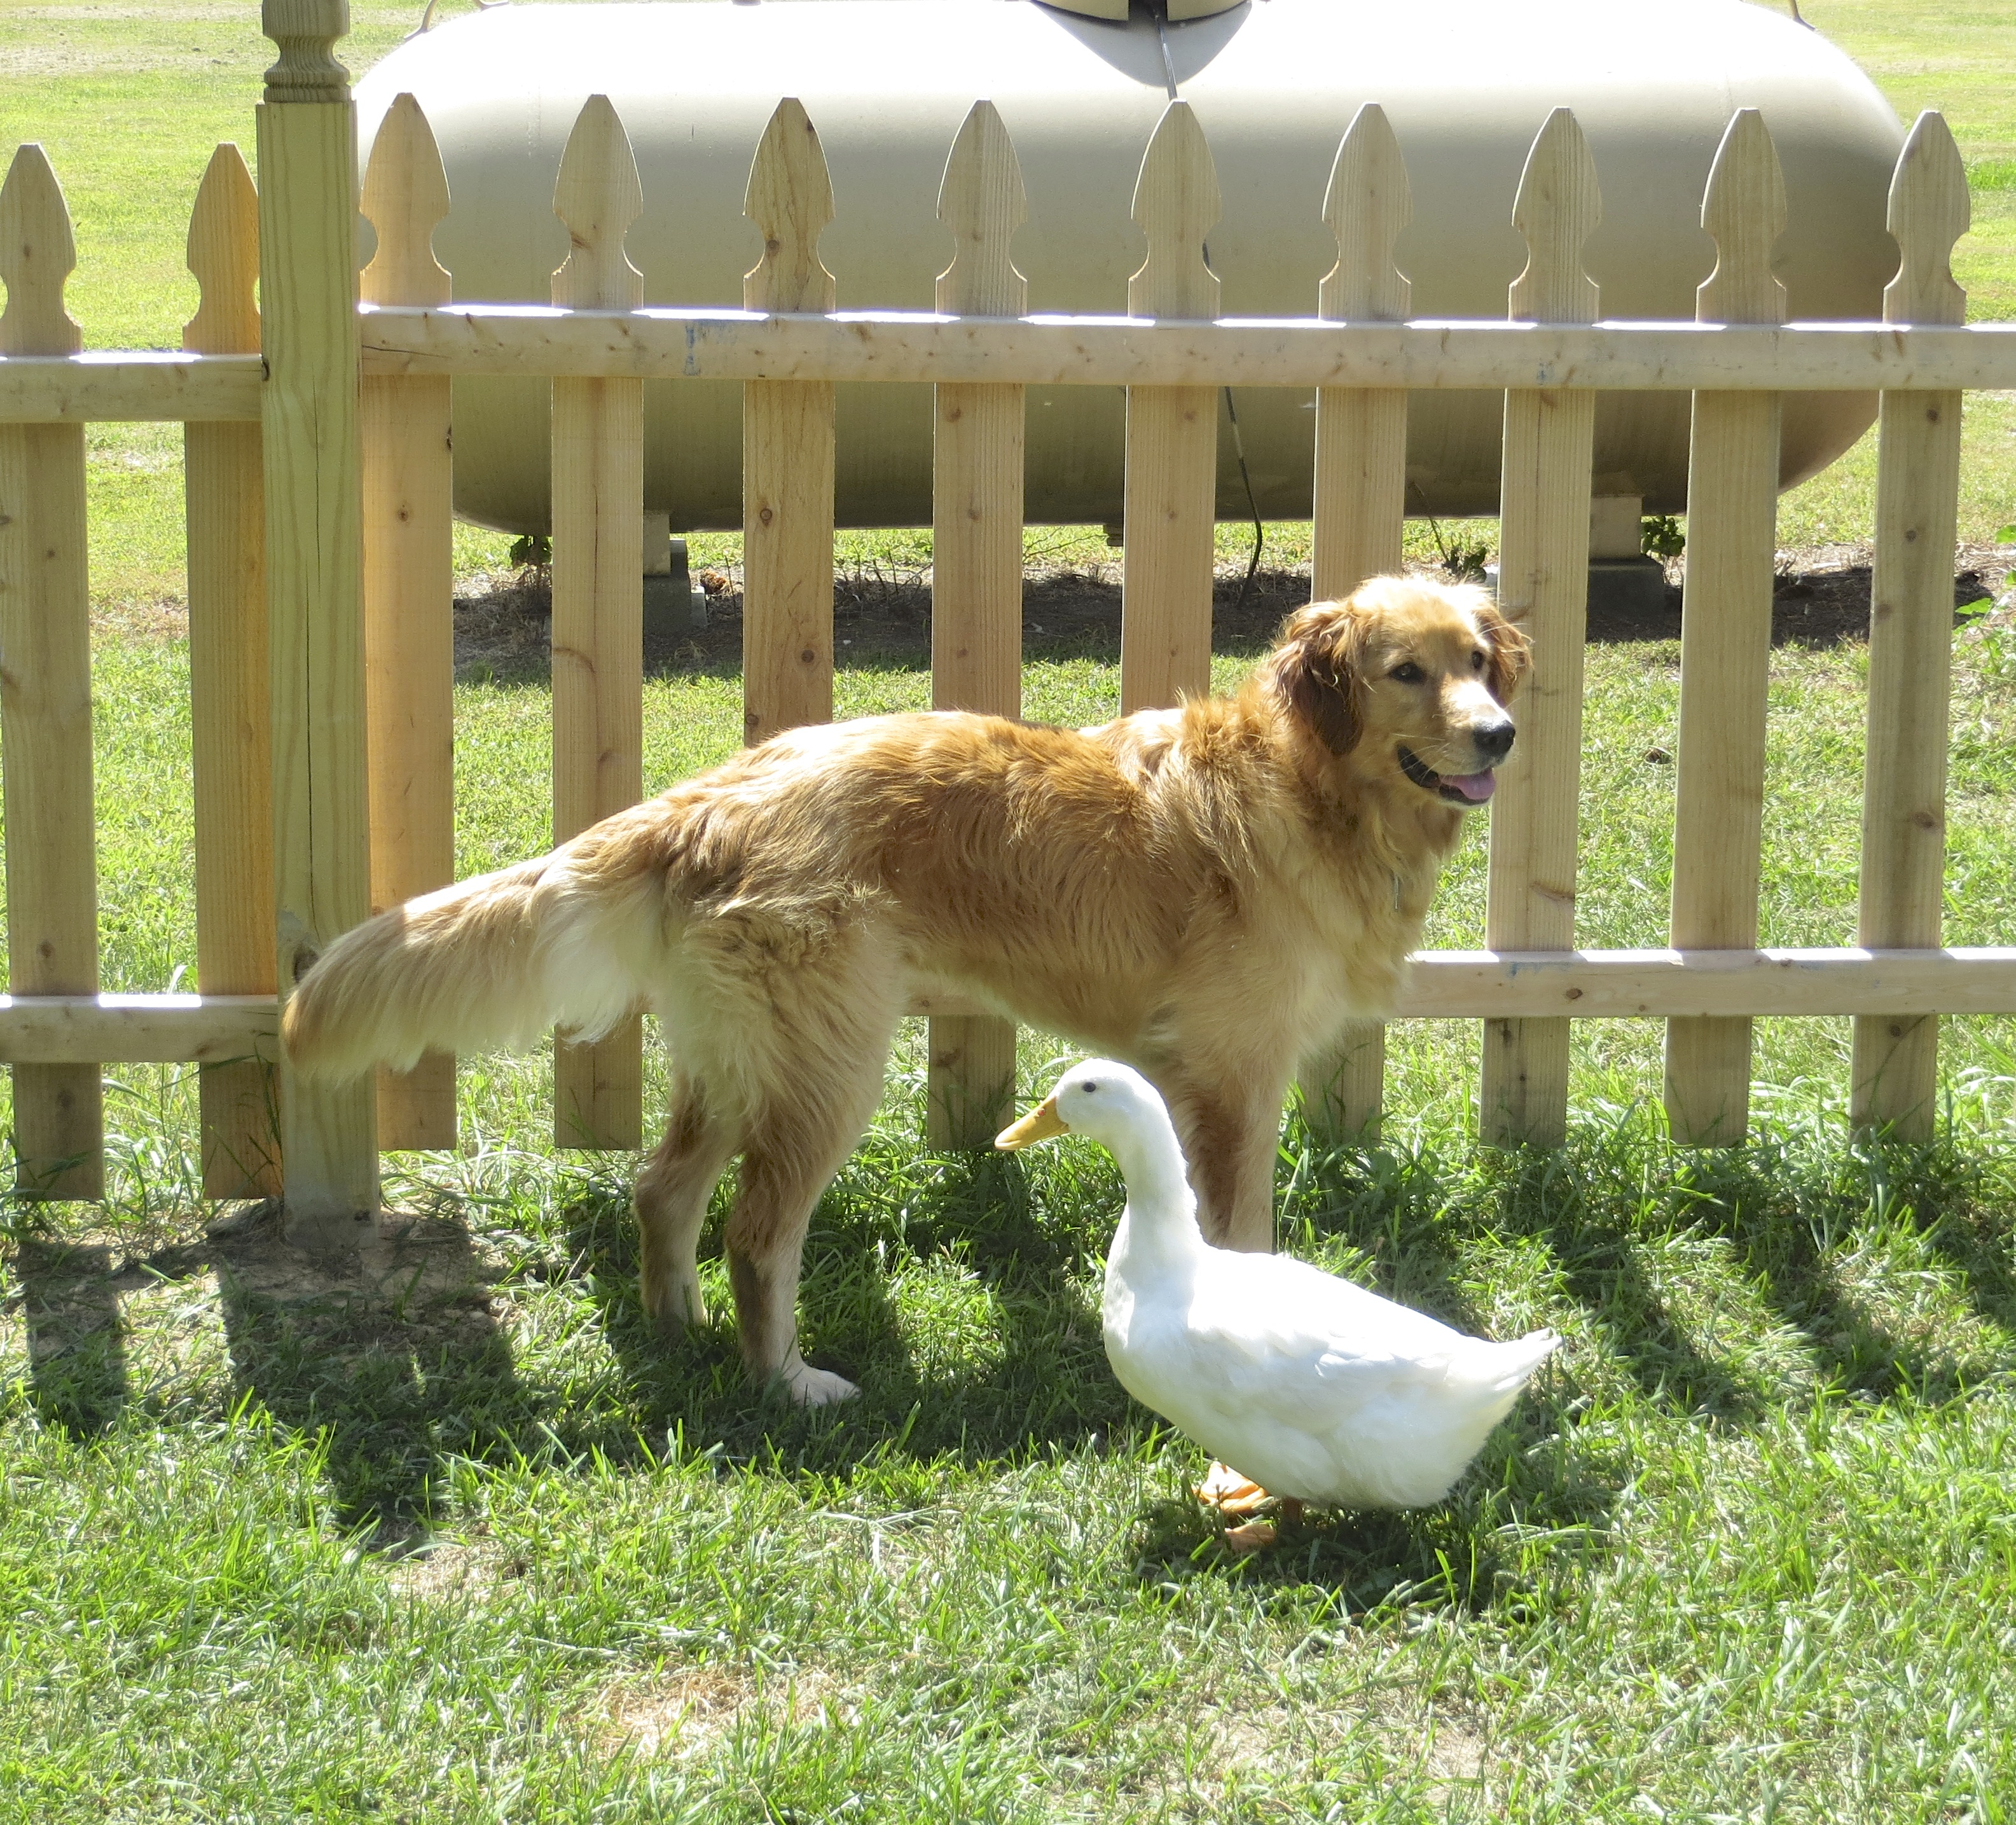 Roxy the Golden Retriever and Tank the Duck